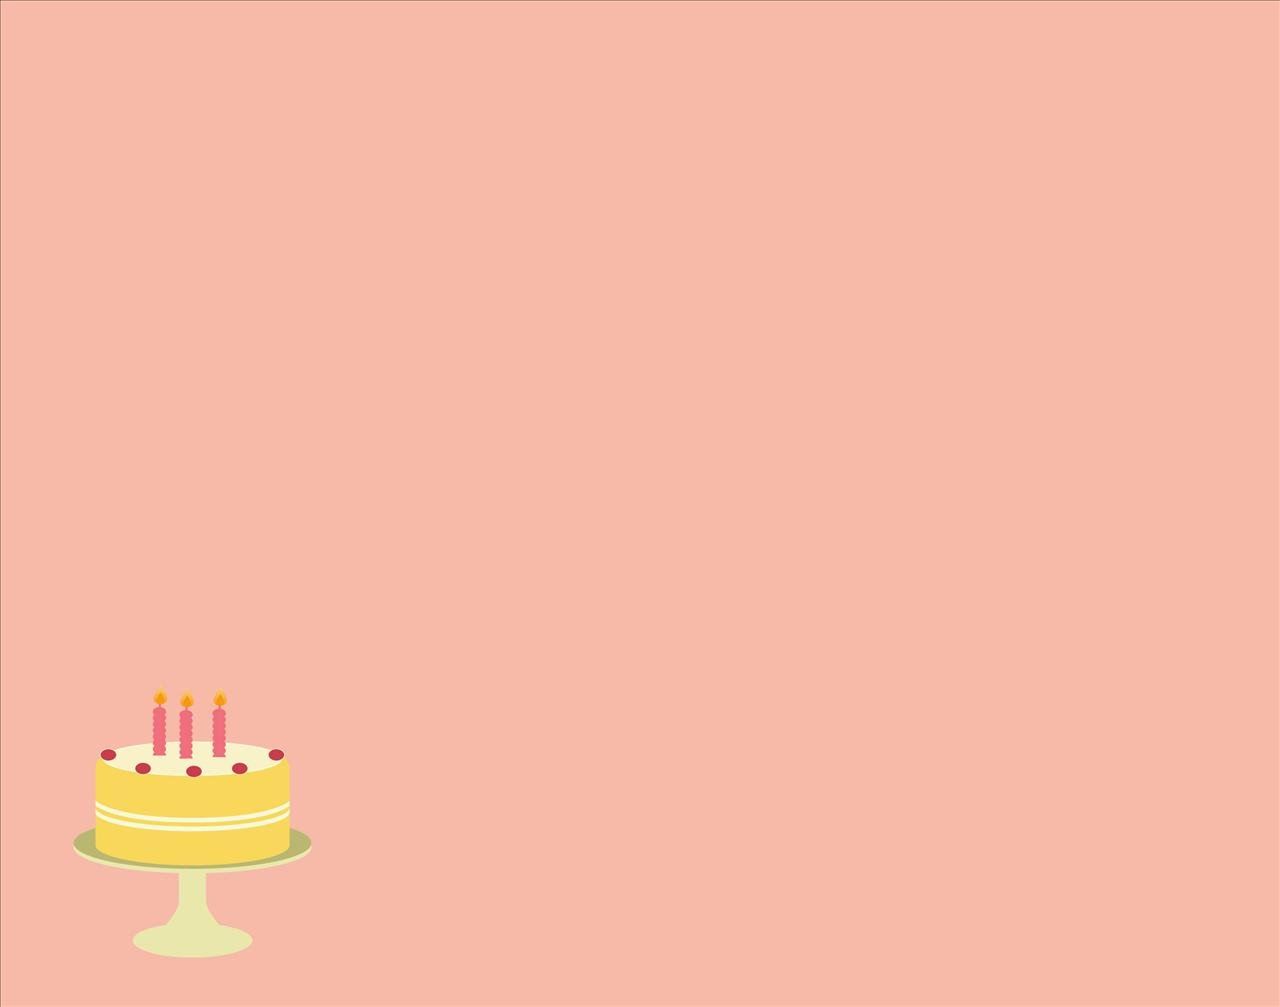 Picture Of A Birthday Cake With Three Candles